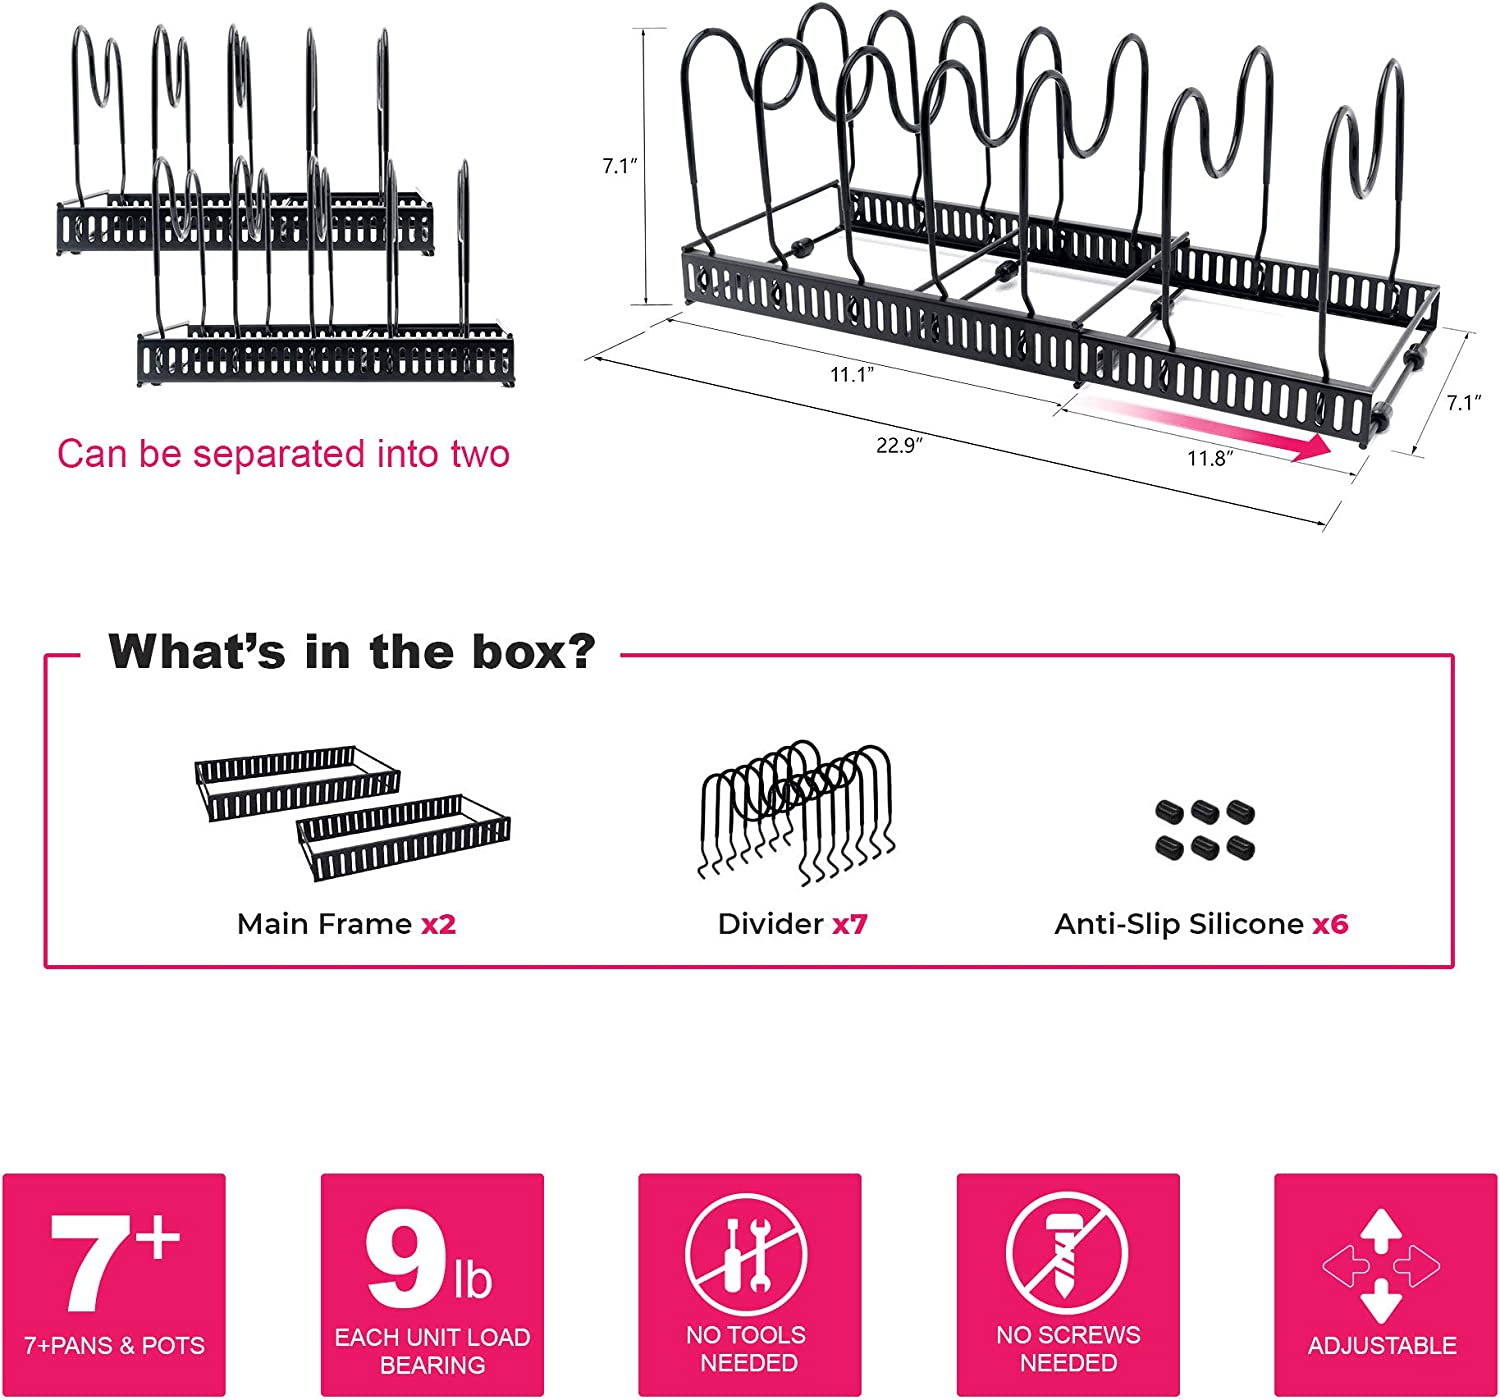 Counter Organization and Lid Holder Expandable 7+ Pan Organizer and Pot Rack Easy To Pull and Expand Up To 22.9 Inches Rustproof Kitchen Cabinet Storage Organizer For Heavy Pots Pans and Cookware